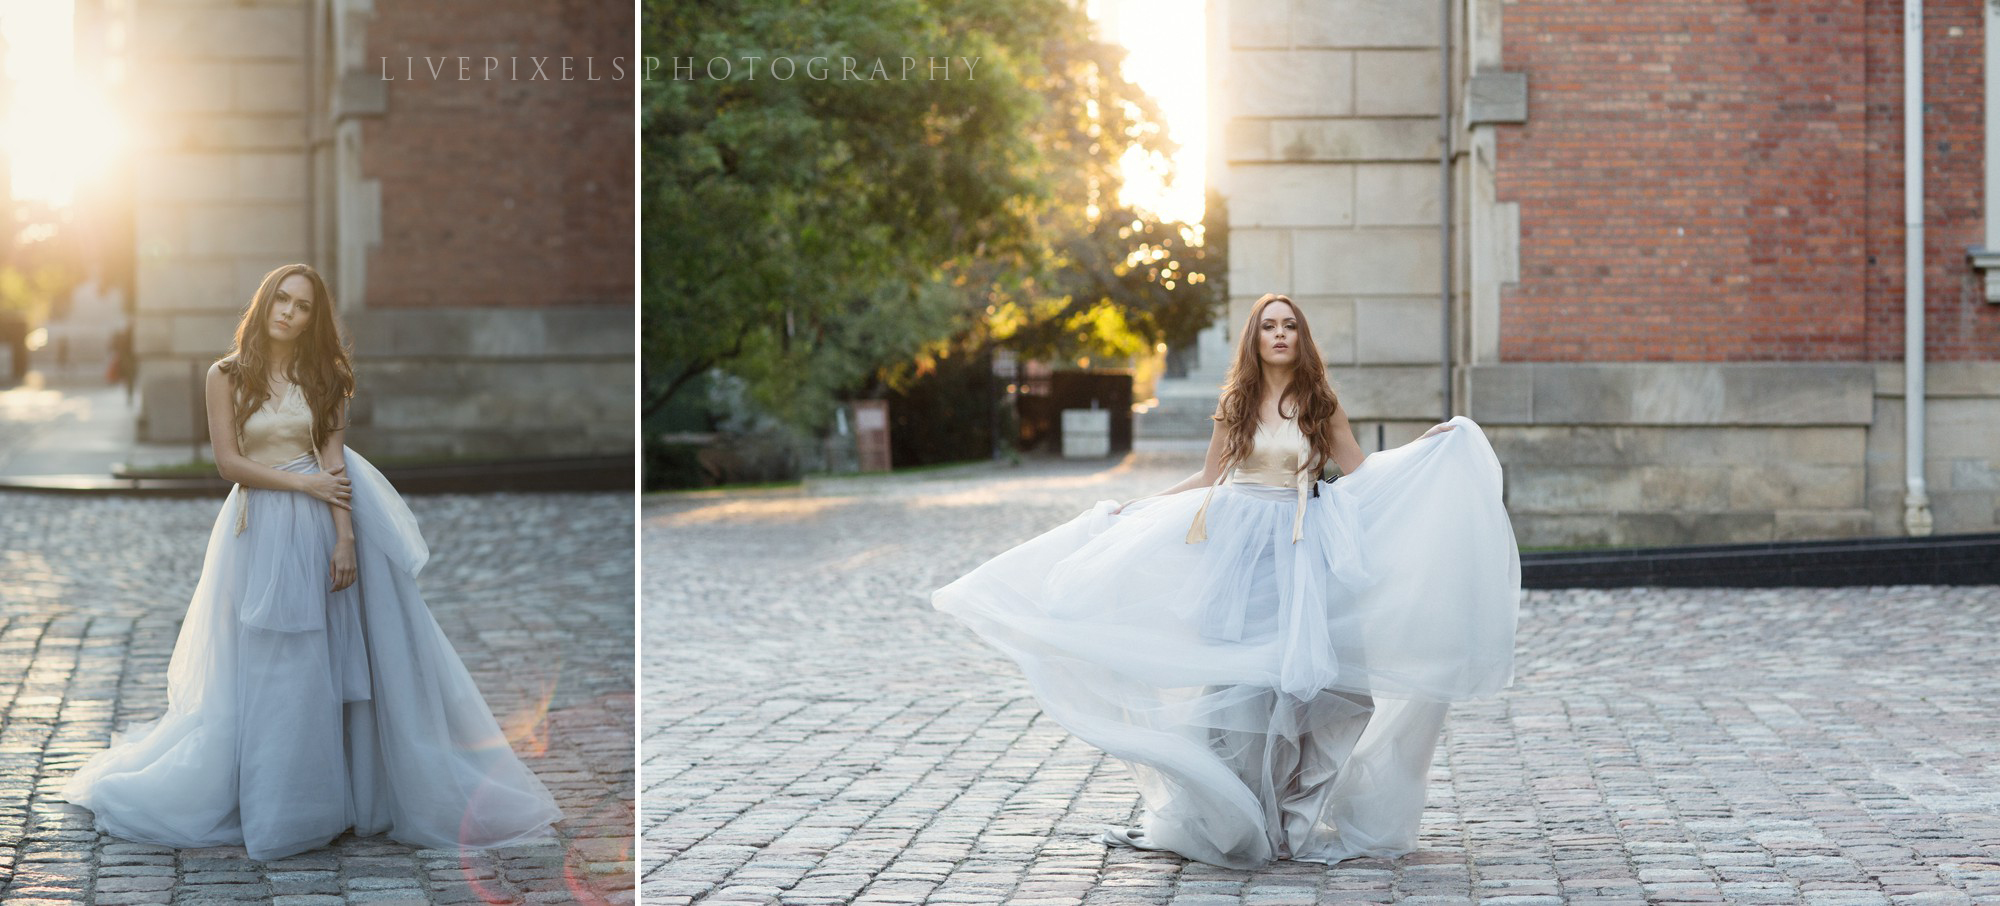 Girl Dancing in a Big Tulle Skirt - Toronto Portrait Photographer - Livepixels Photography, Toronto / livepixelsphotography.com